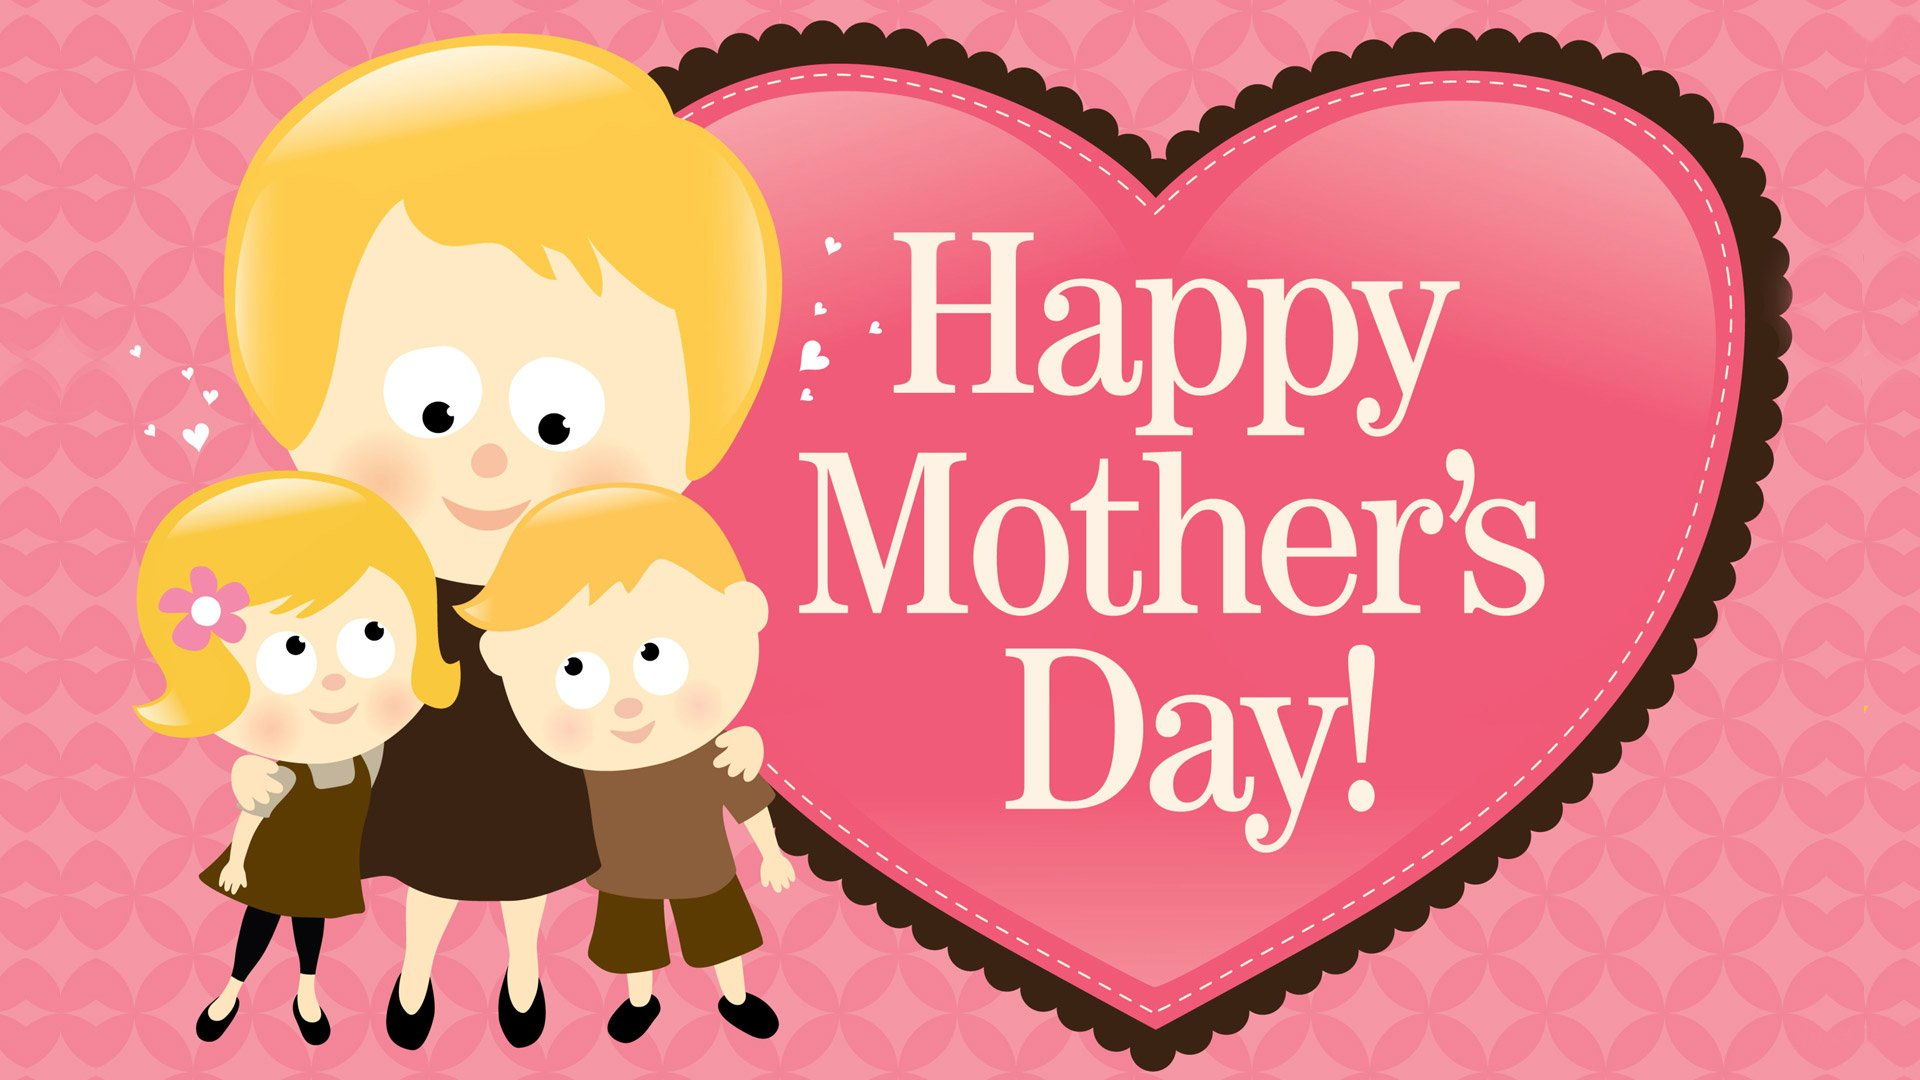 Mother S Day Hd Wallpaper Background Image 1920x1080 Id